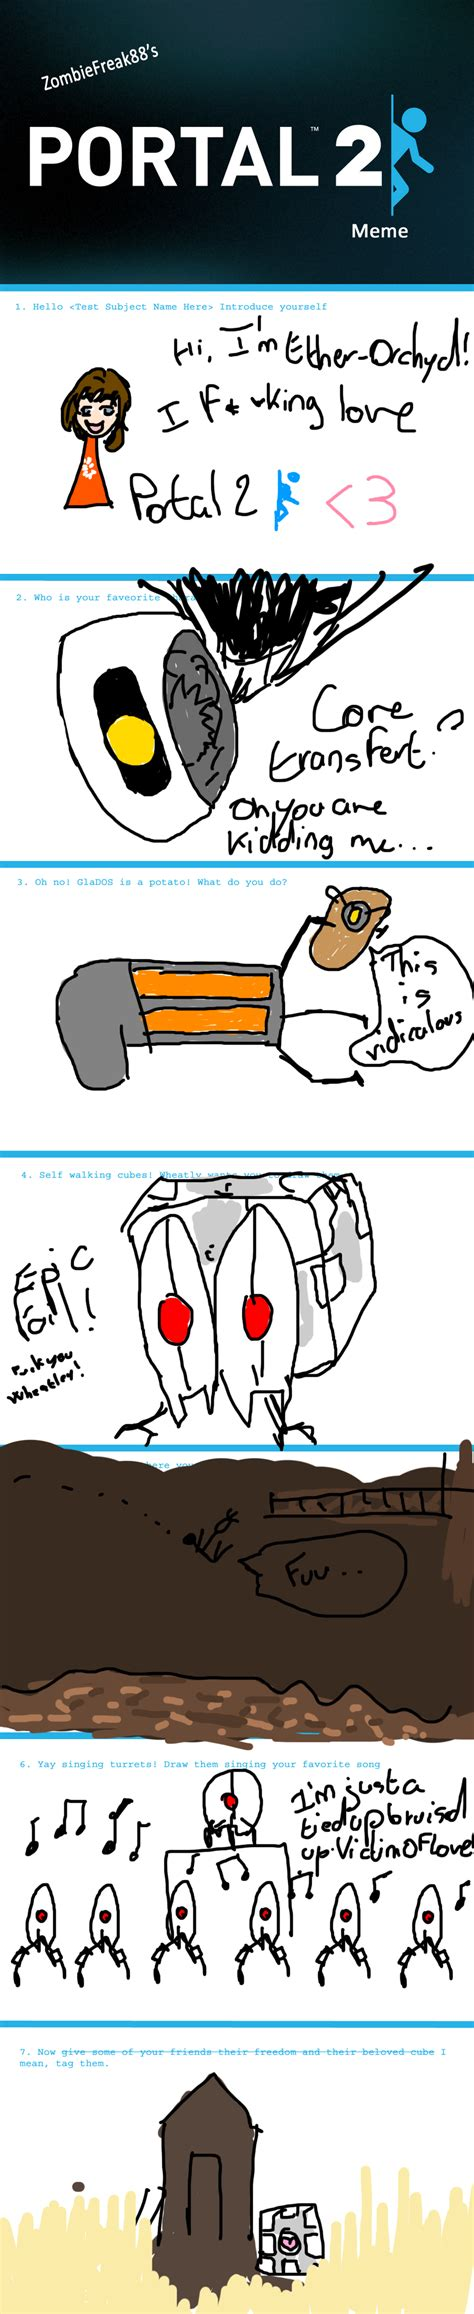 Meme With Two Pictures - portal 2 meme 2 by ether orchyd on deviantart